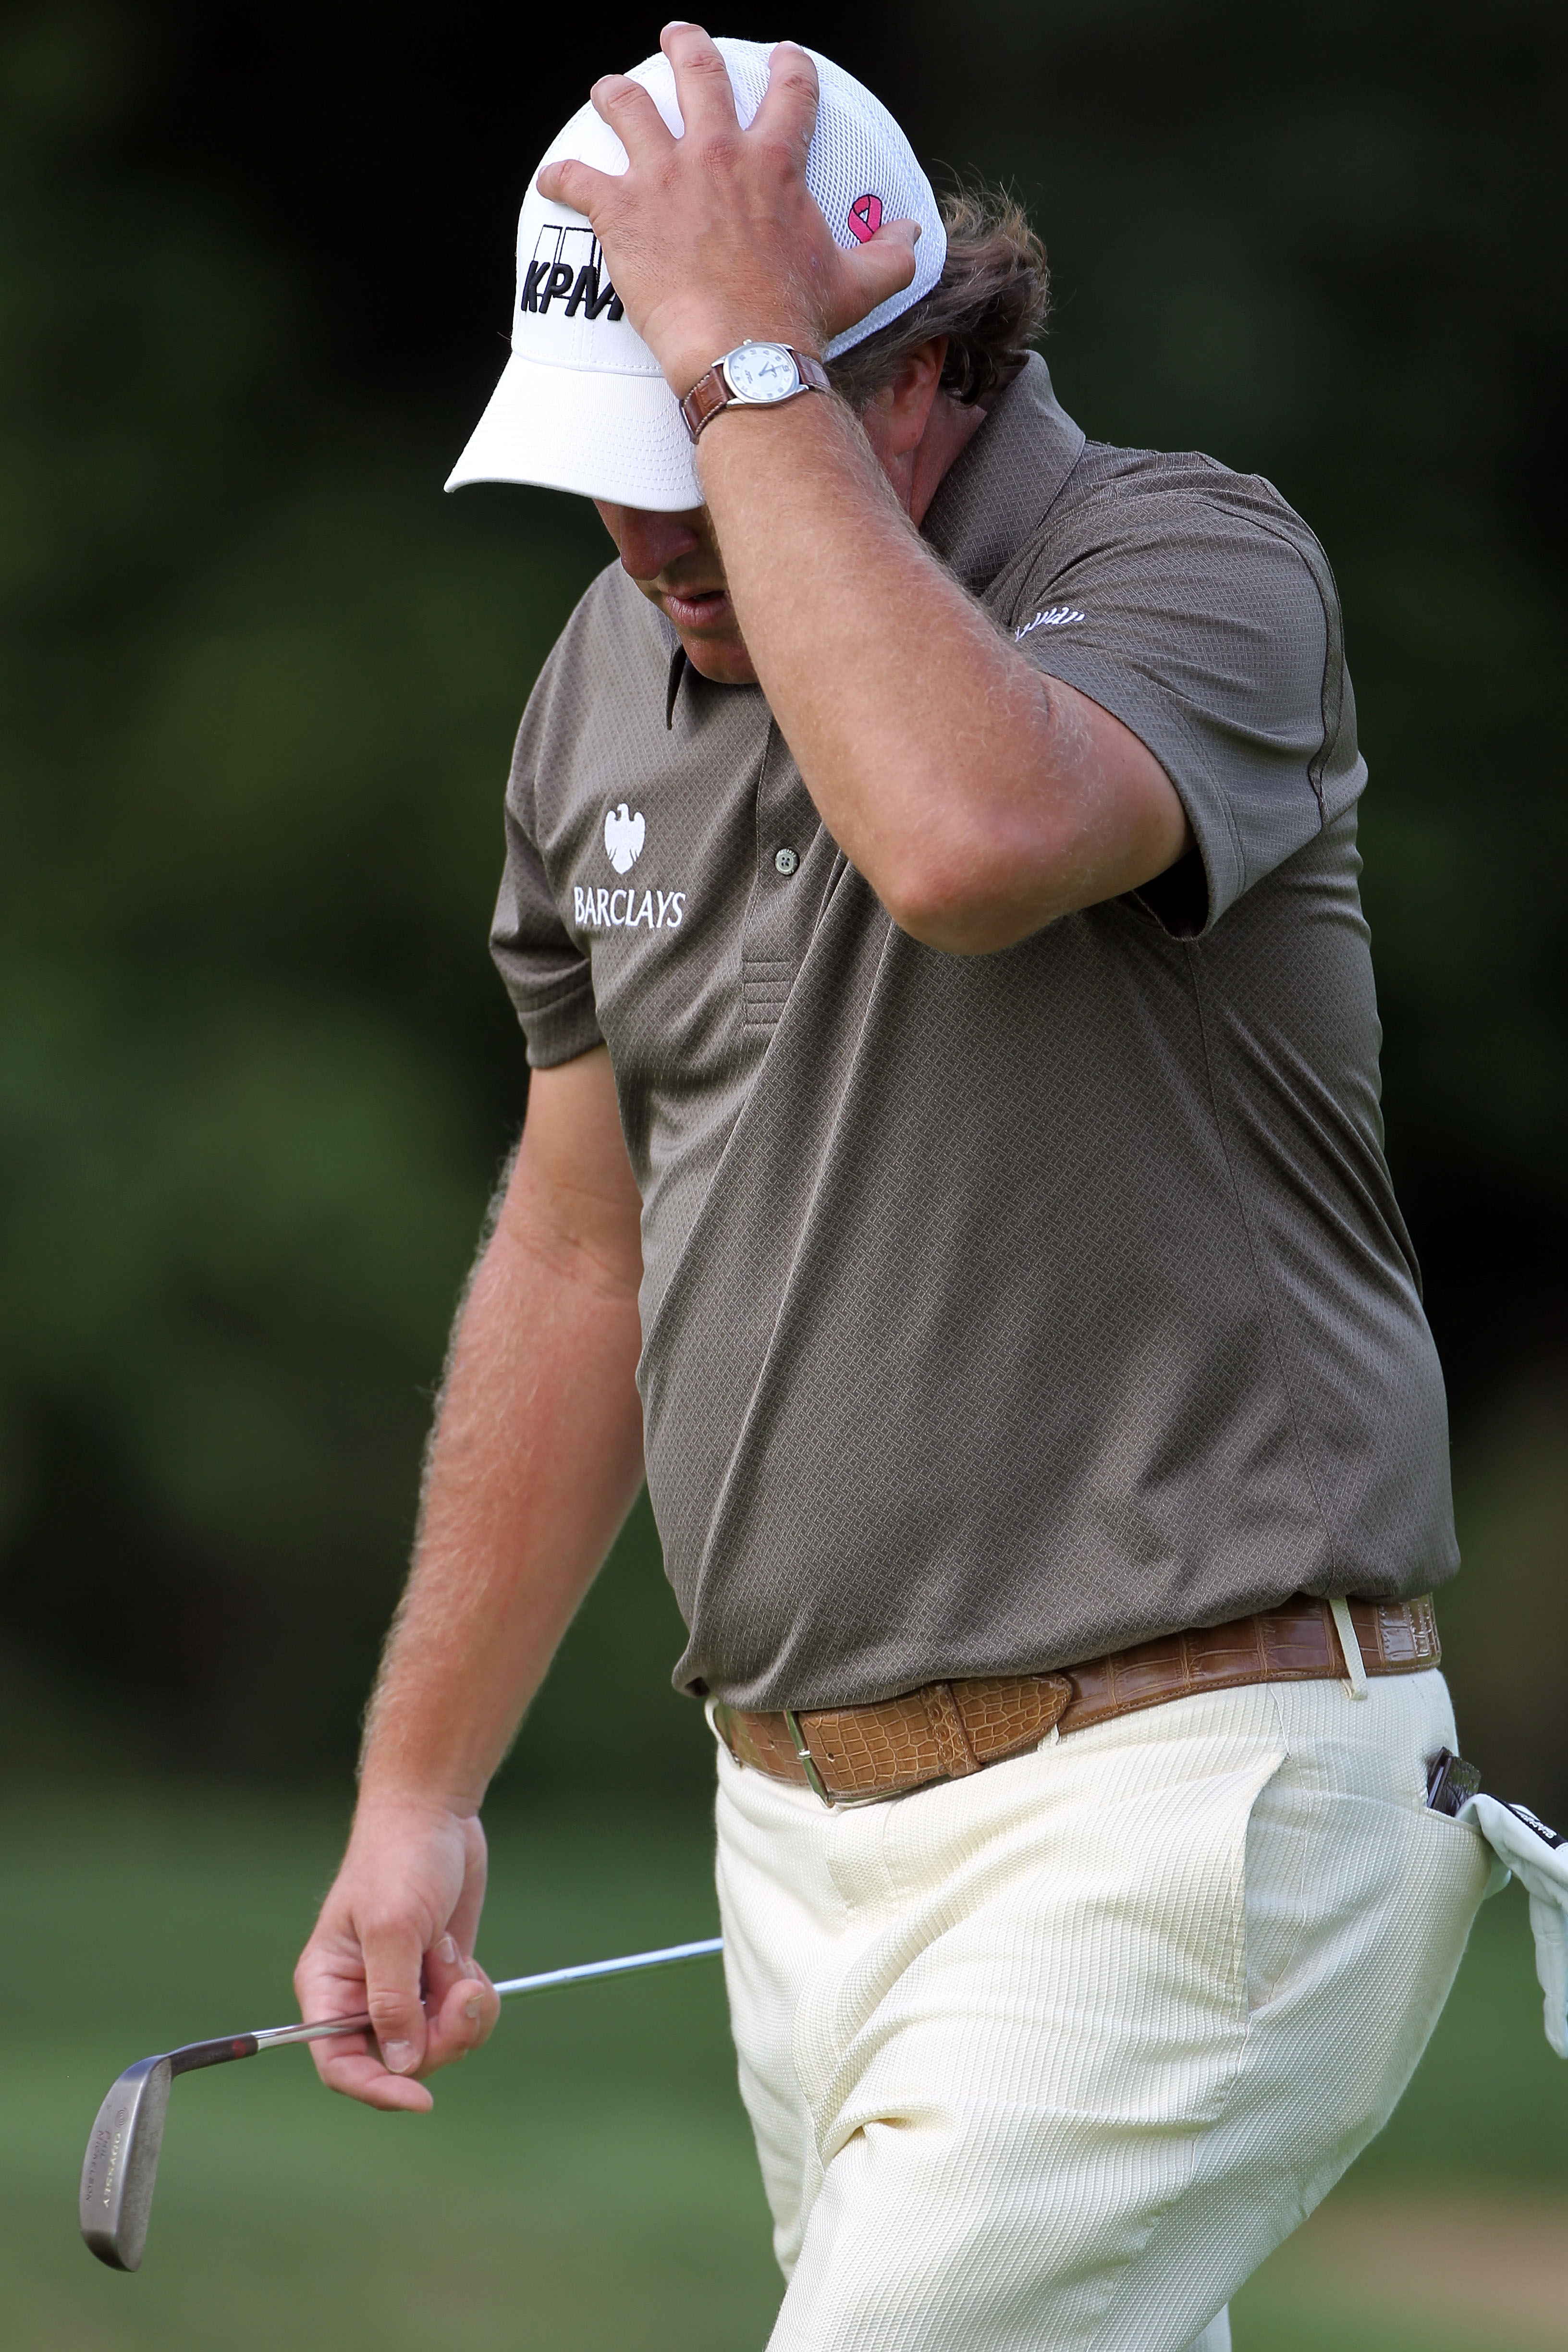 Phil Mickelson shot 72 in the first round at Cog Hill.